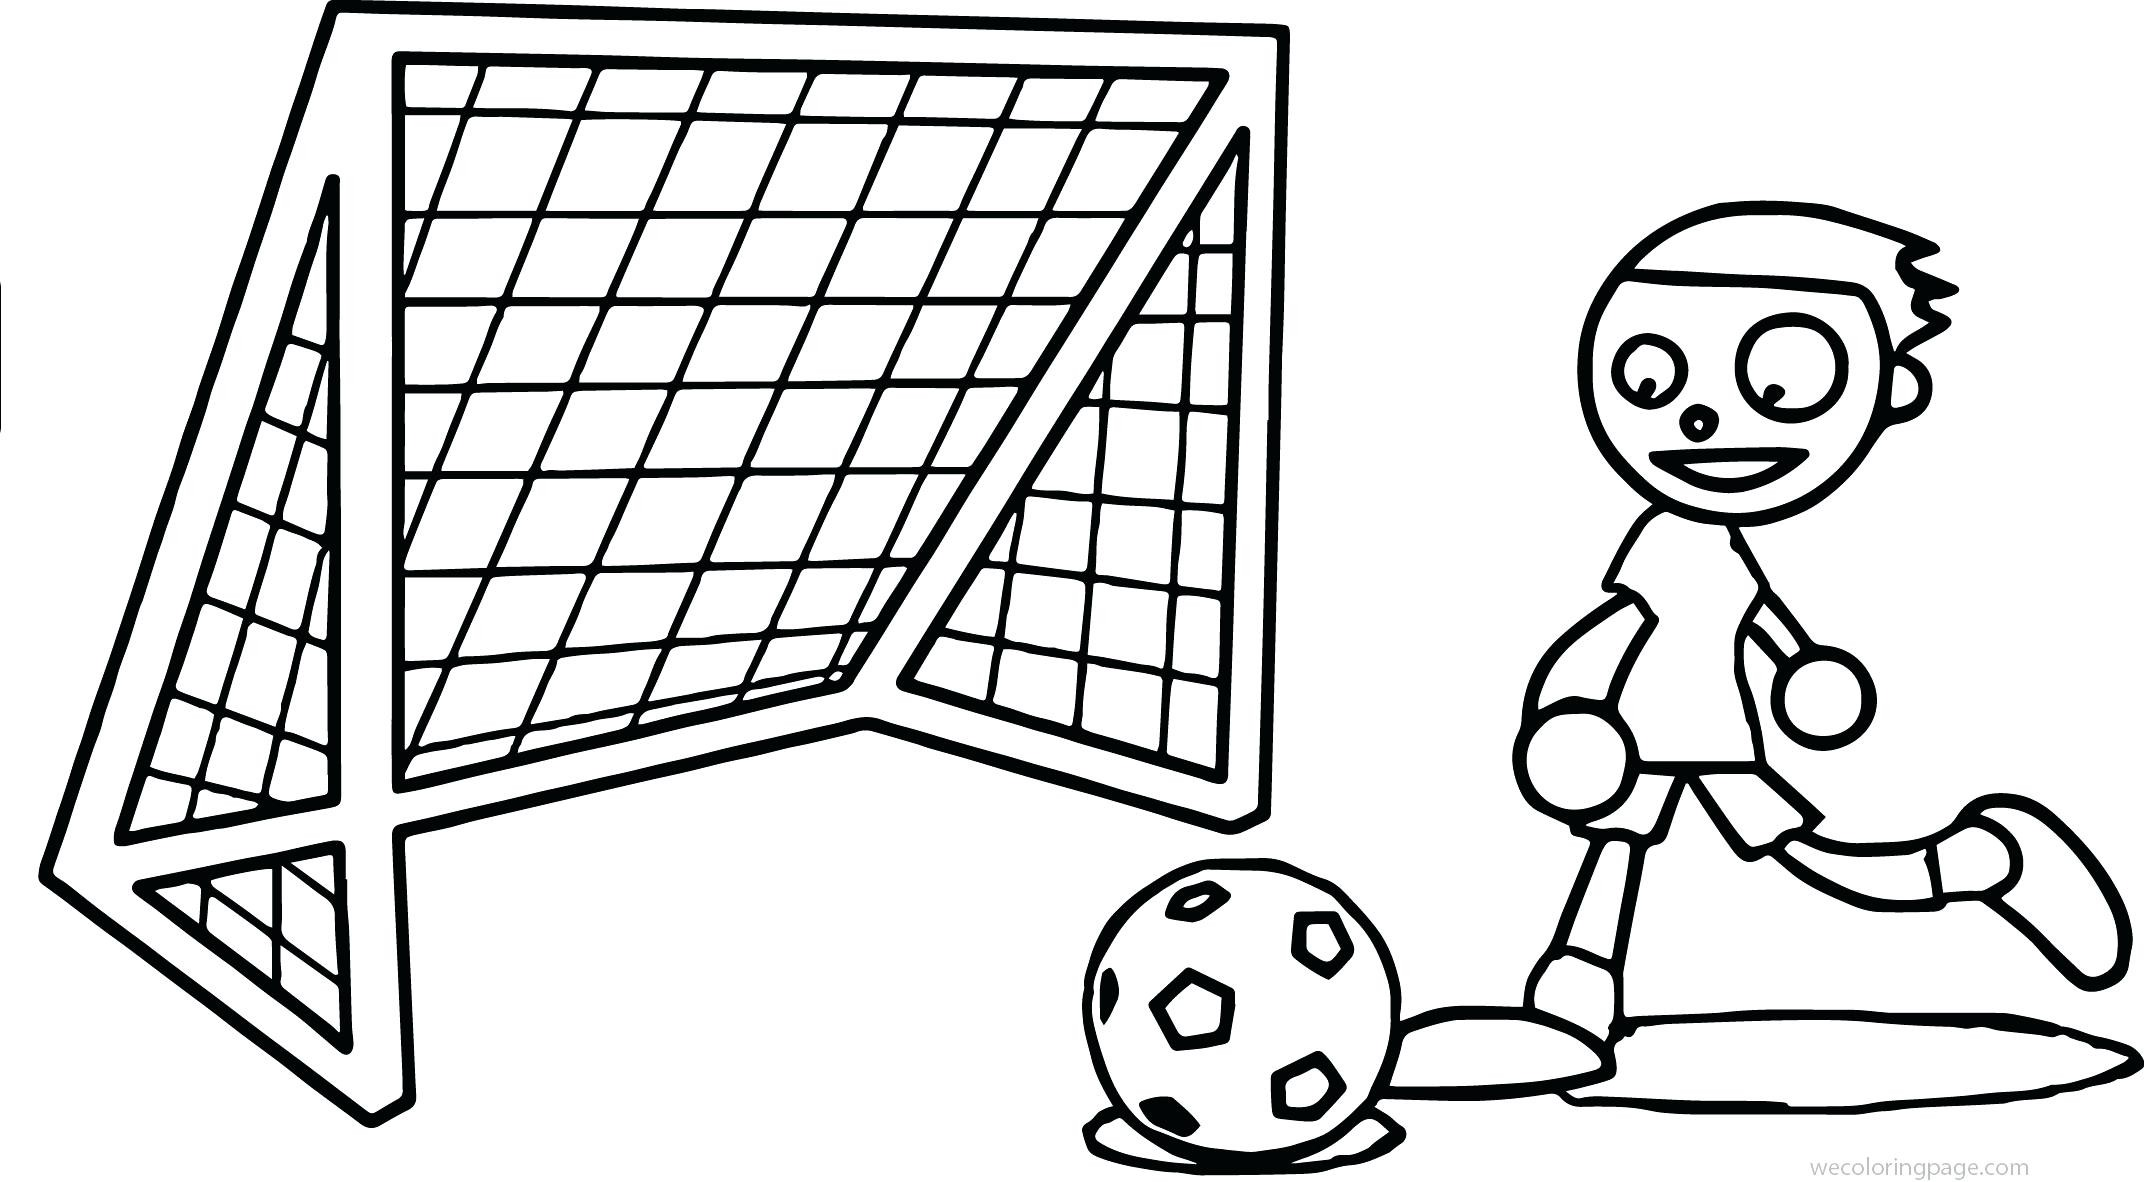 Soccer Net Drawing At Getdrawings